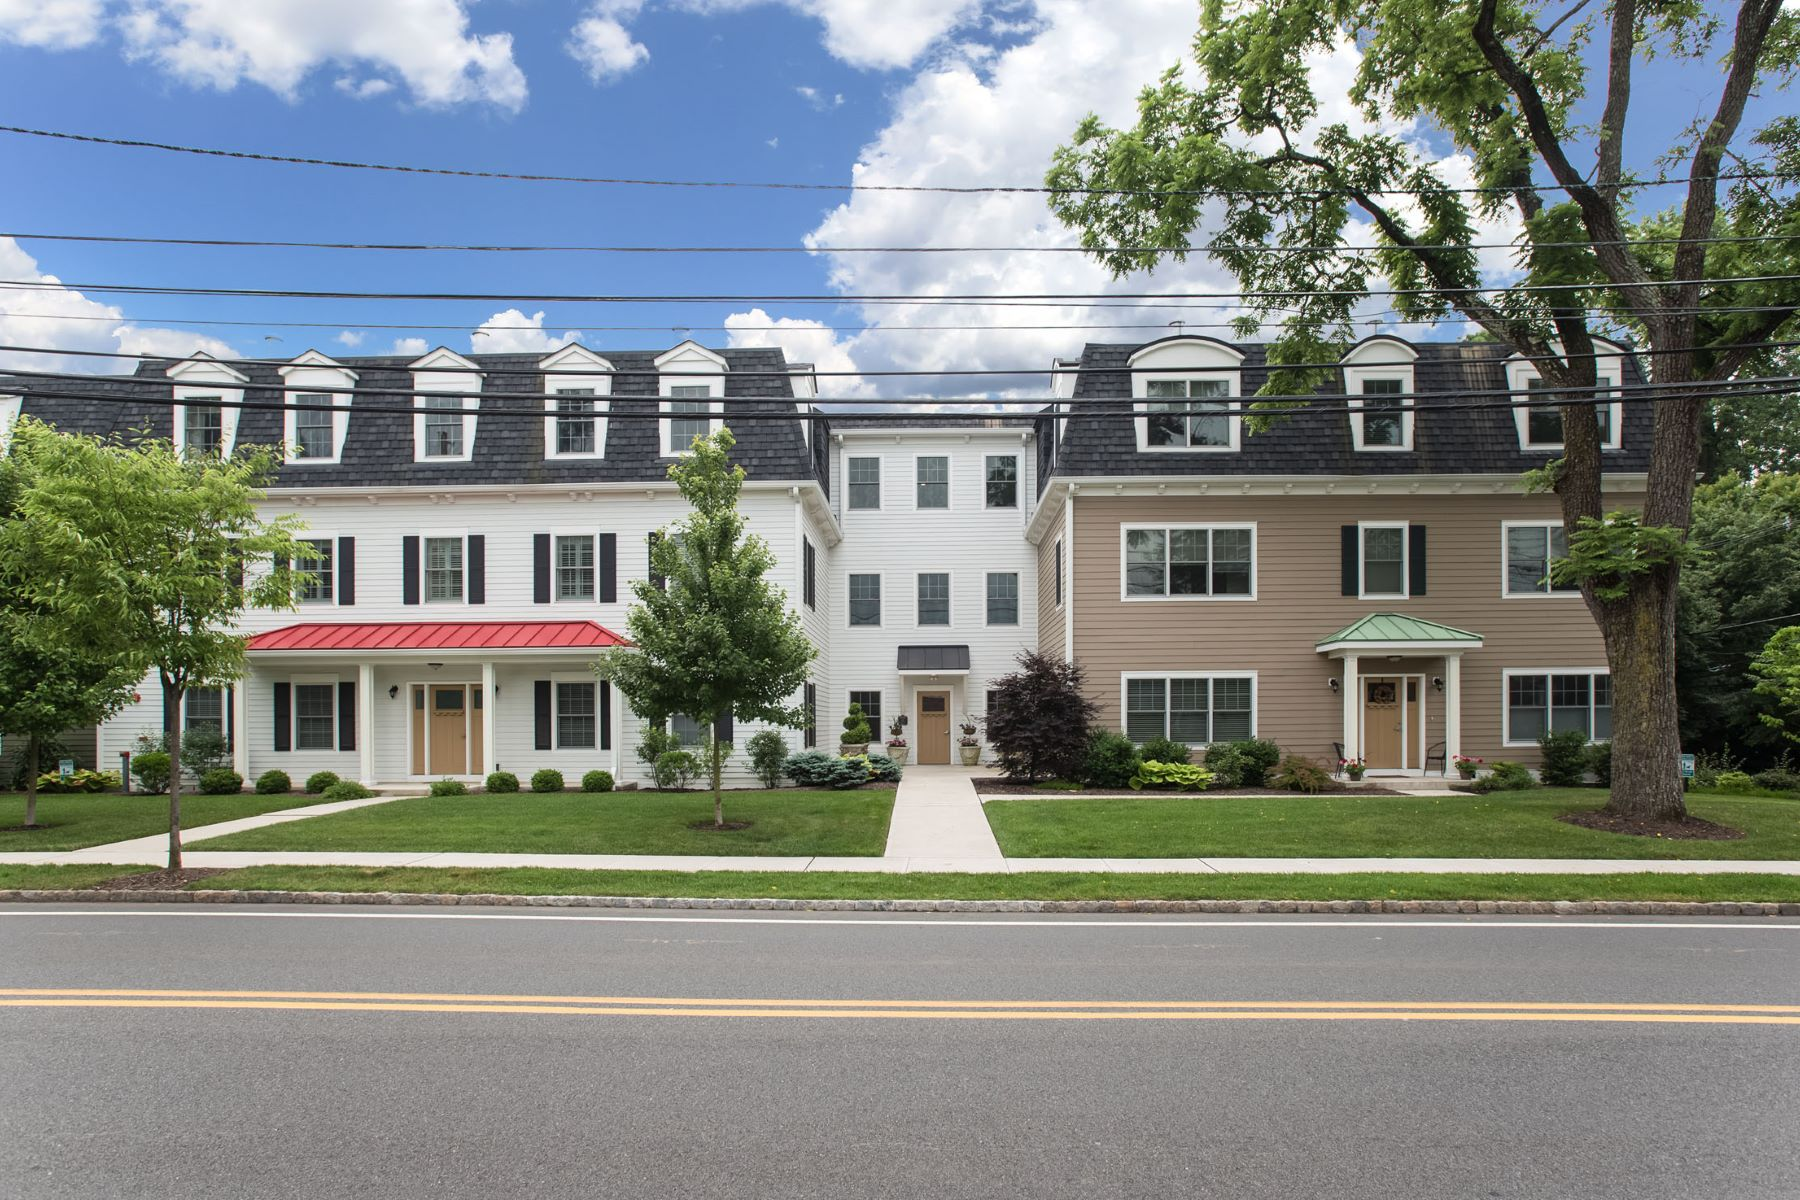 Townhouse for Sale at Spacious luxury single floor condominium 25 Ridgedale Avenue, Unit 16 Madison, New Jersey, 07940 United States